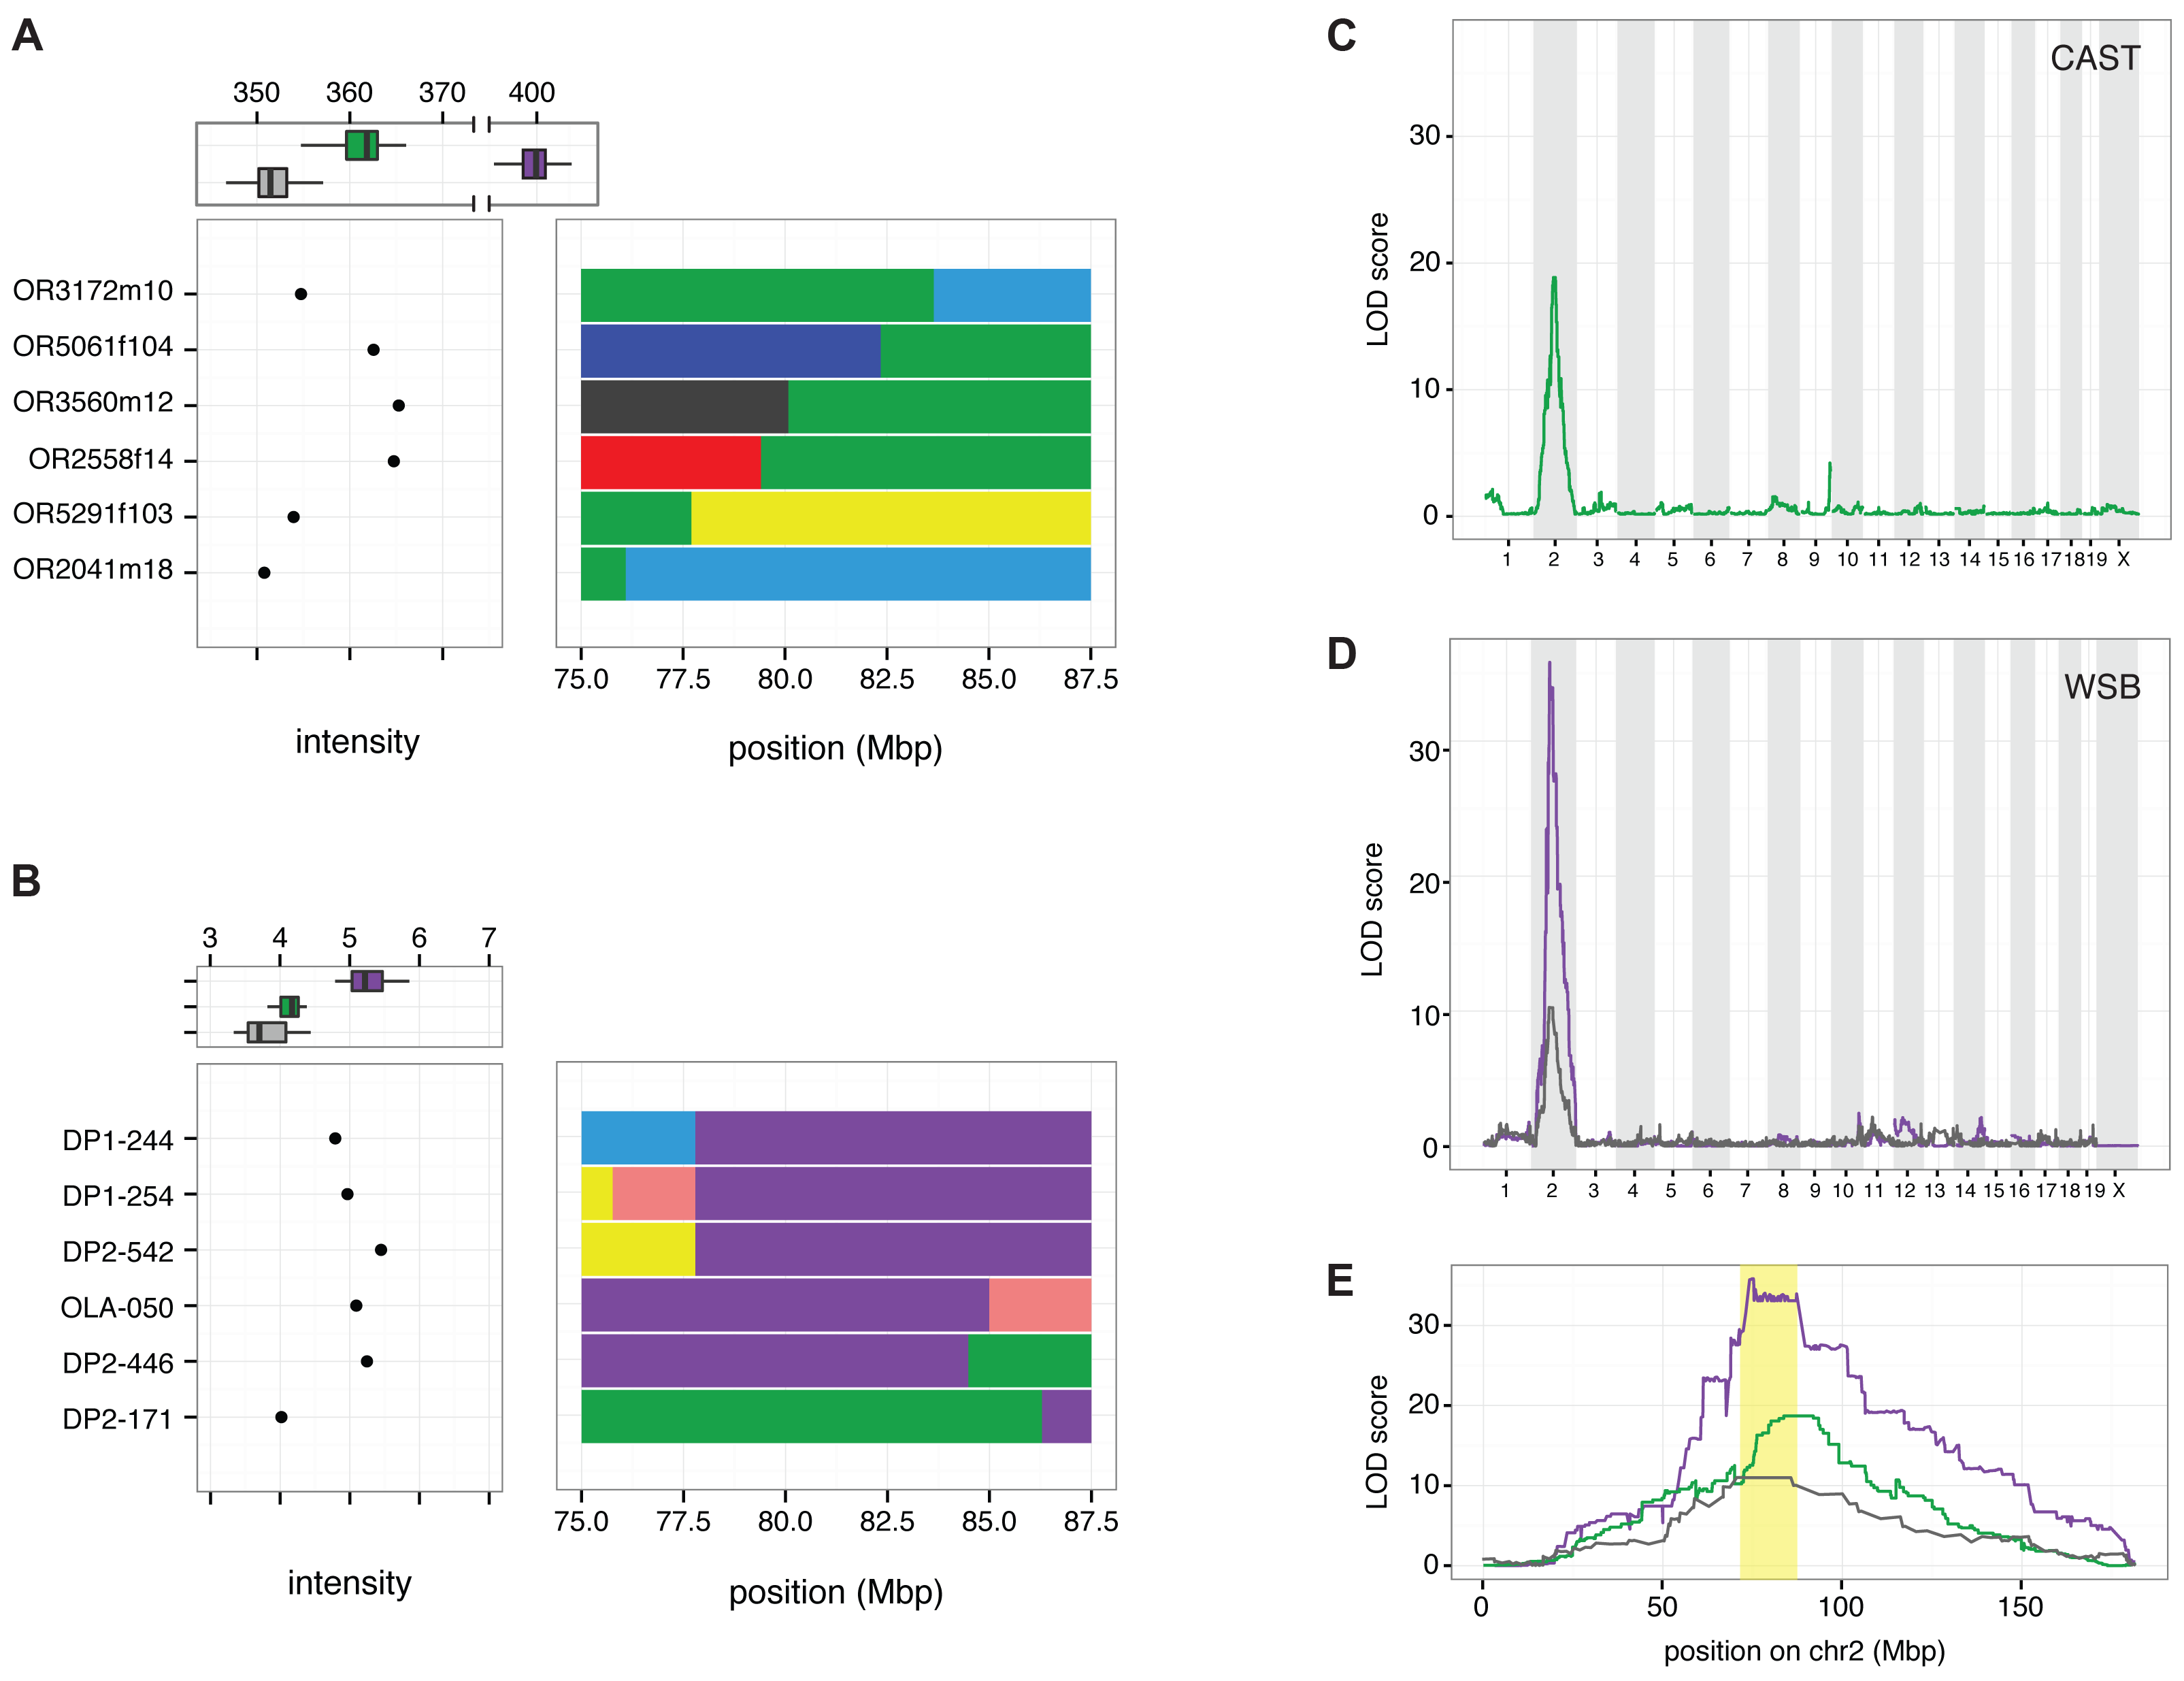 Linkage mapping localizes <i>R2d2</i> to a 900 kb region in Chr 2.